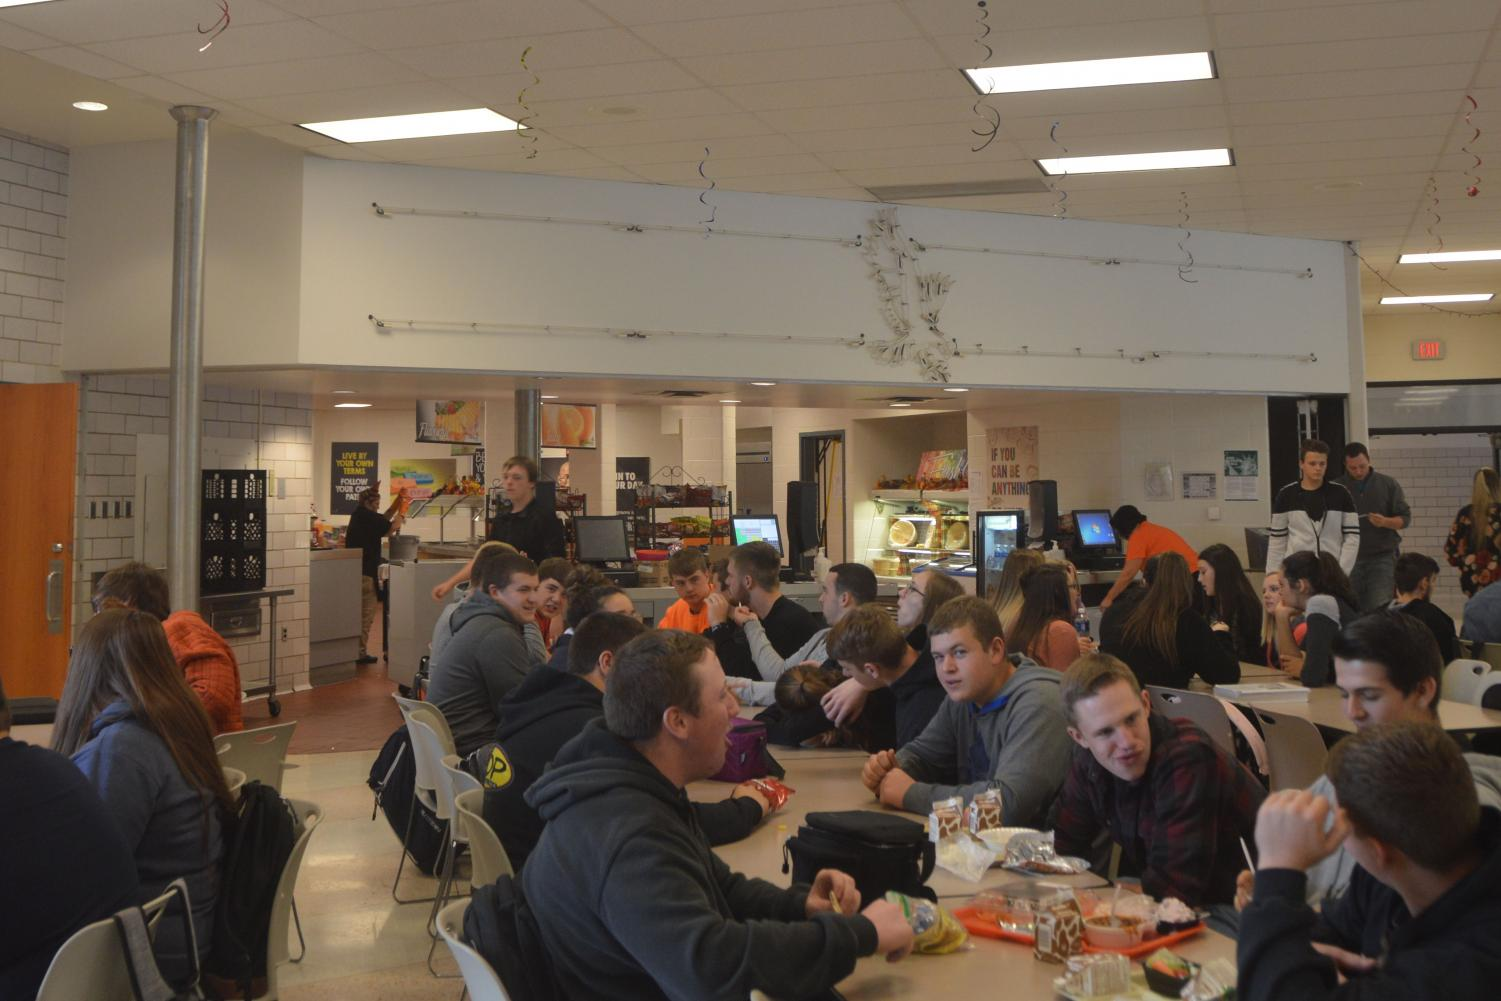 High school cafeteria Large Tahs Students Take Our High School Cafeteria Survey Tyrone Eagle Eye News Tahs Students Take Our High School Cafeteria Survey Tyrone Eagle